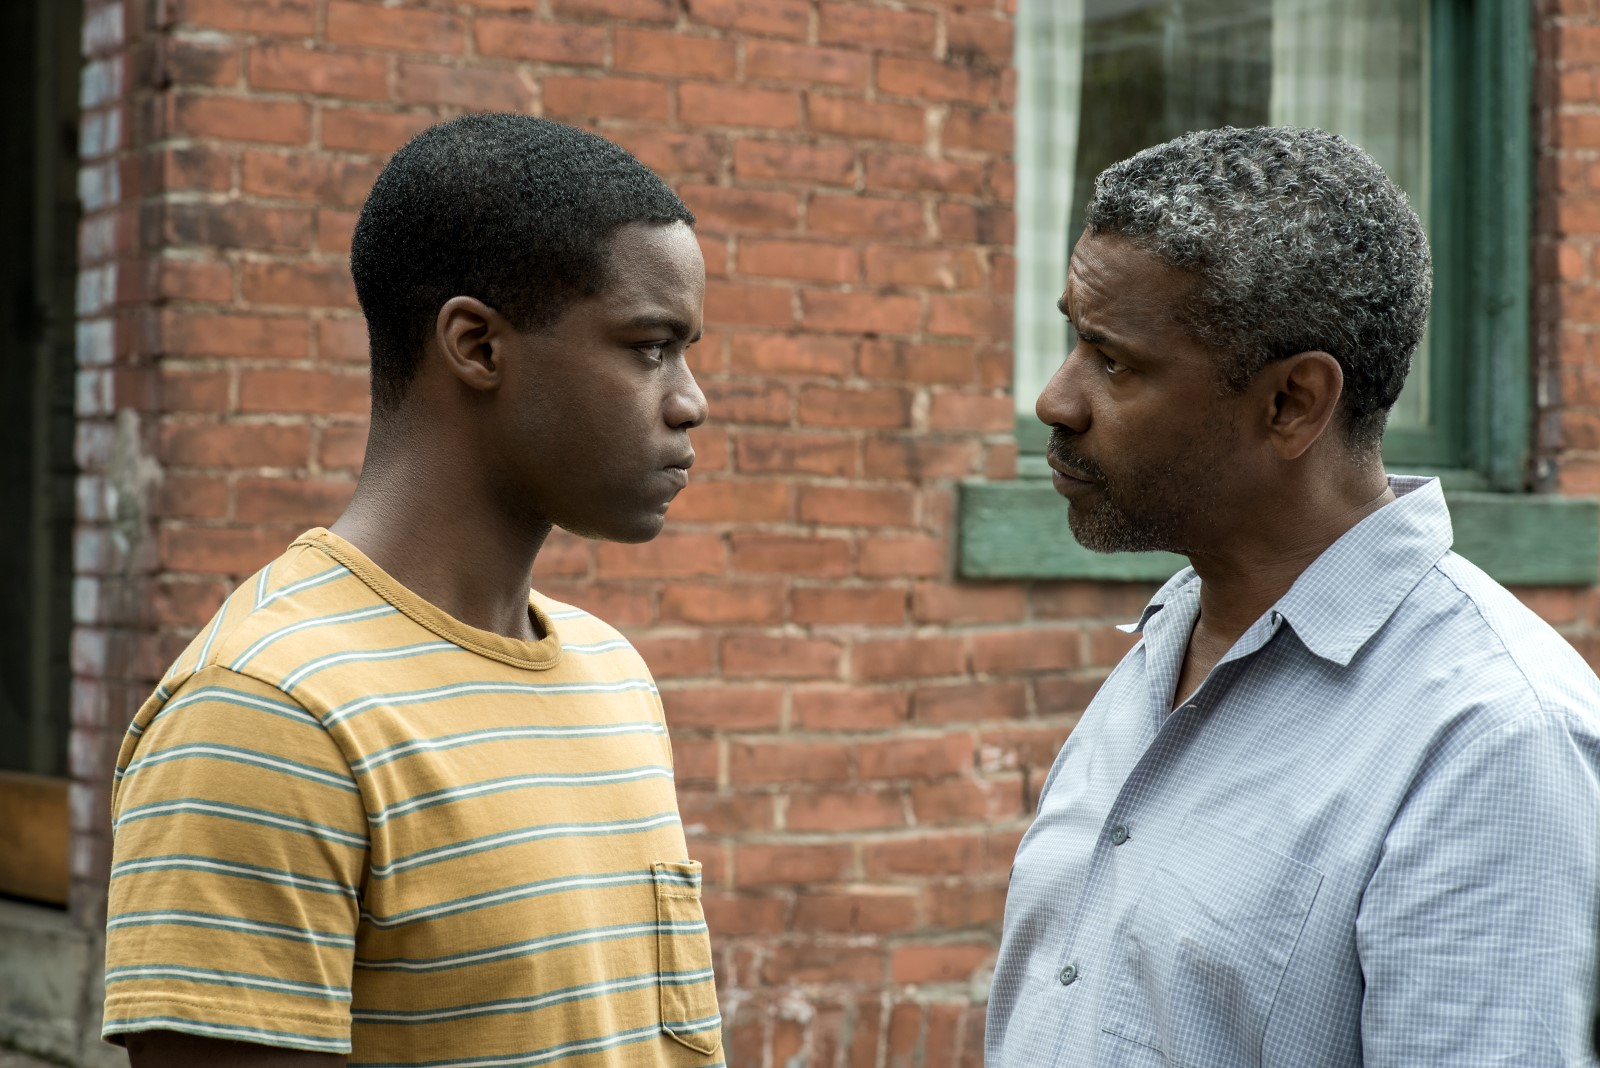 Denzel Washington plays Troy Maxson and Jovan Adepo plays Cory in Fences from Paramount Pictures. Directed by Denzel Washington from a screenplay by August Wilson.